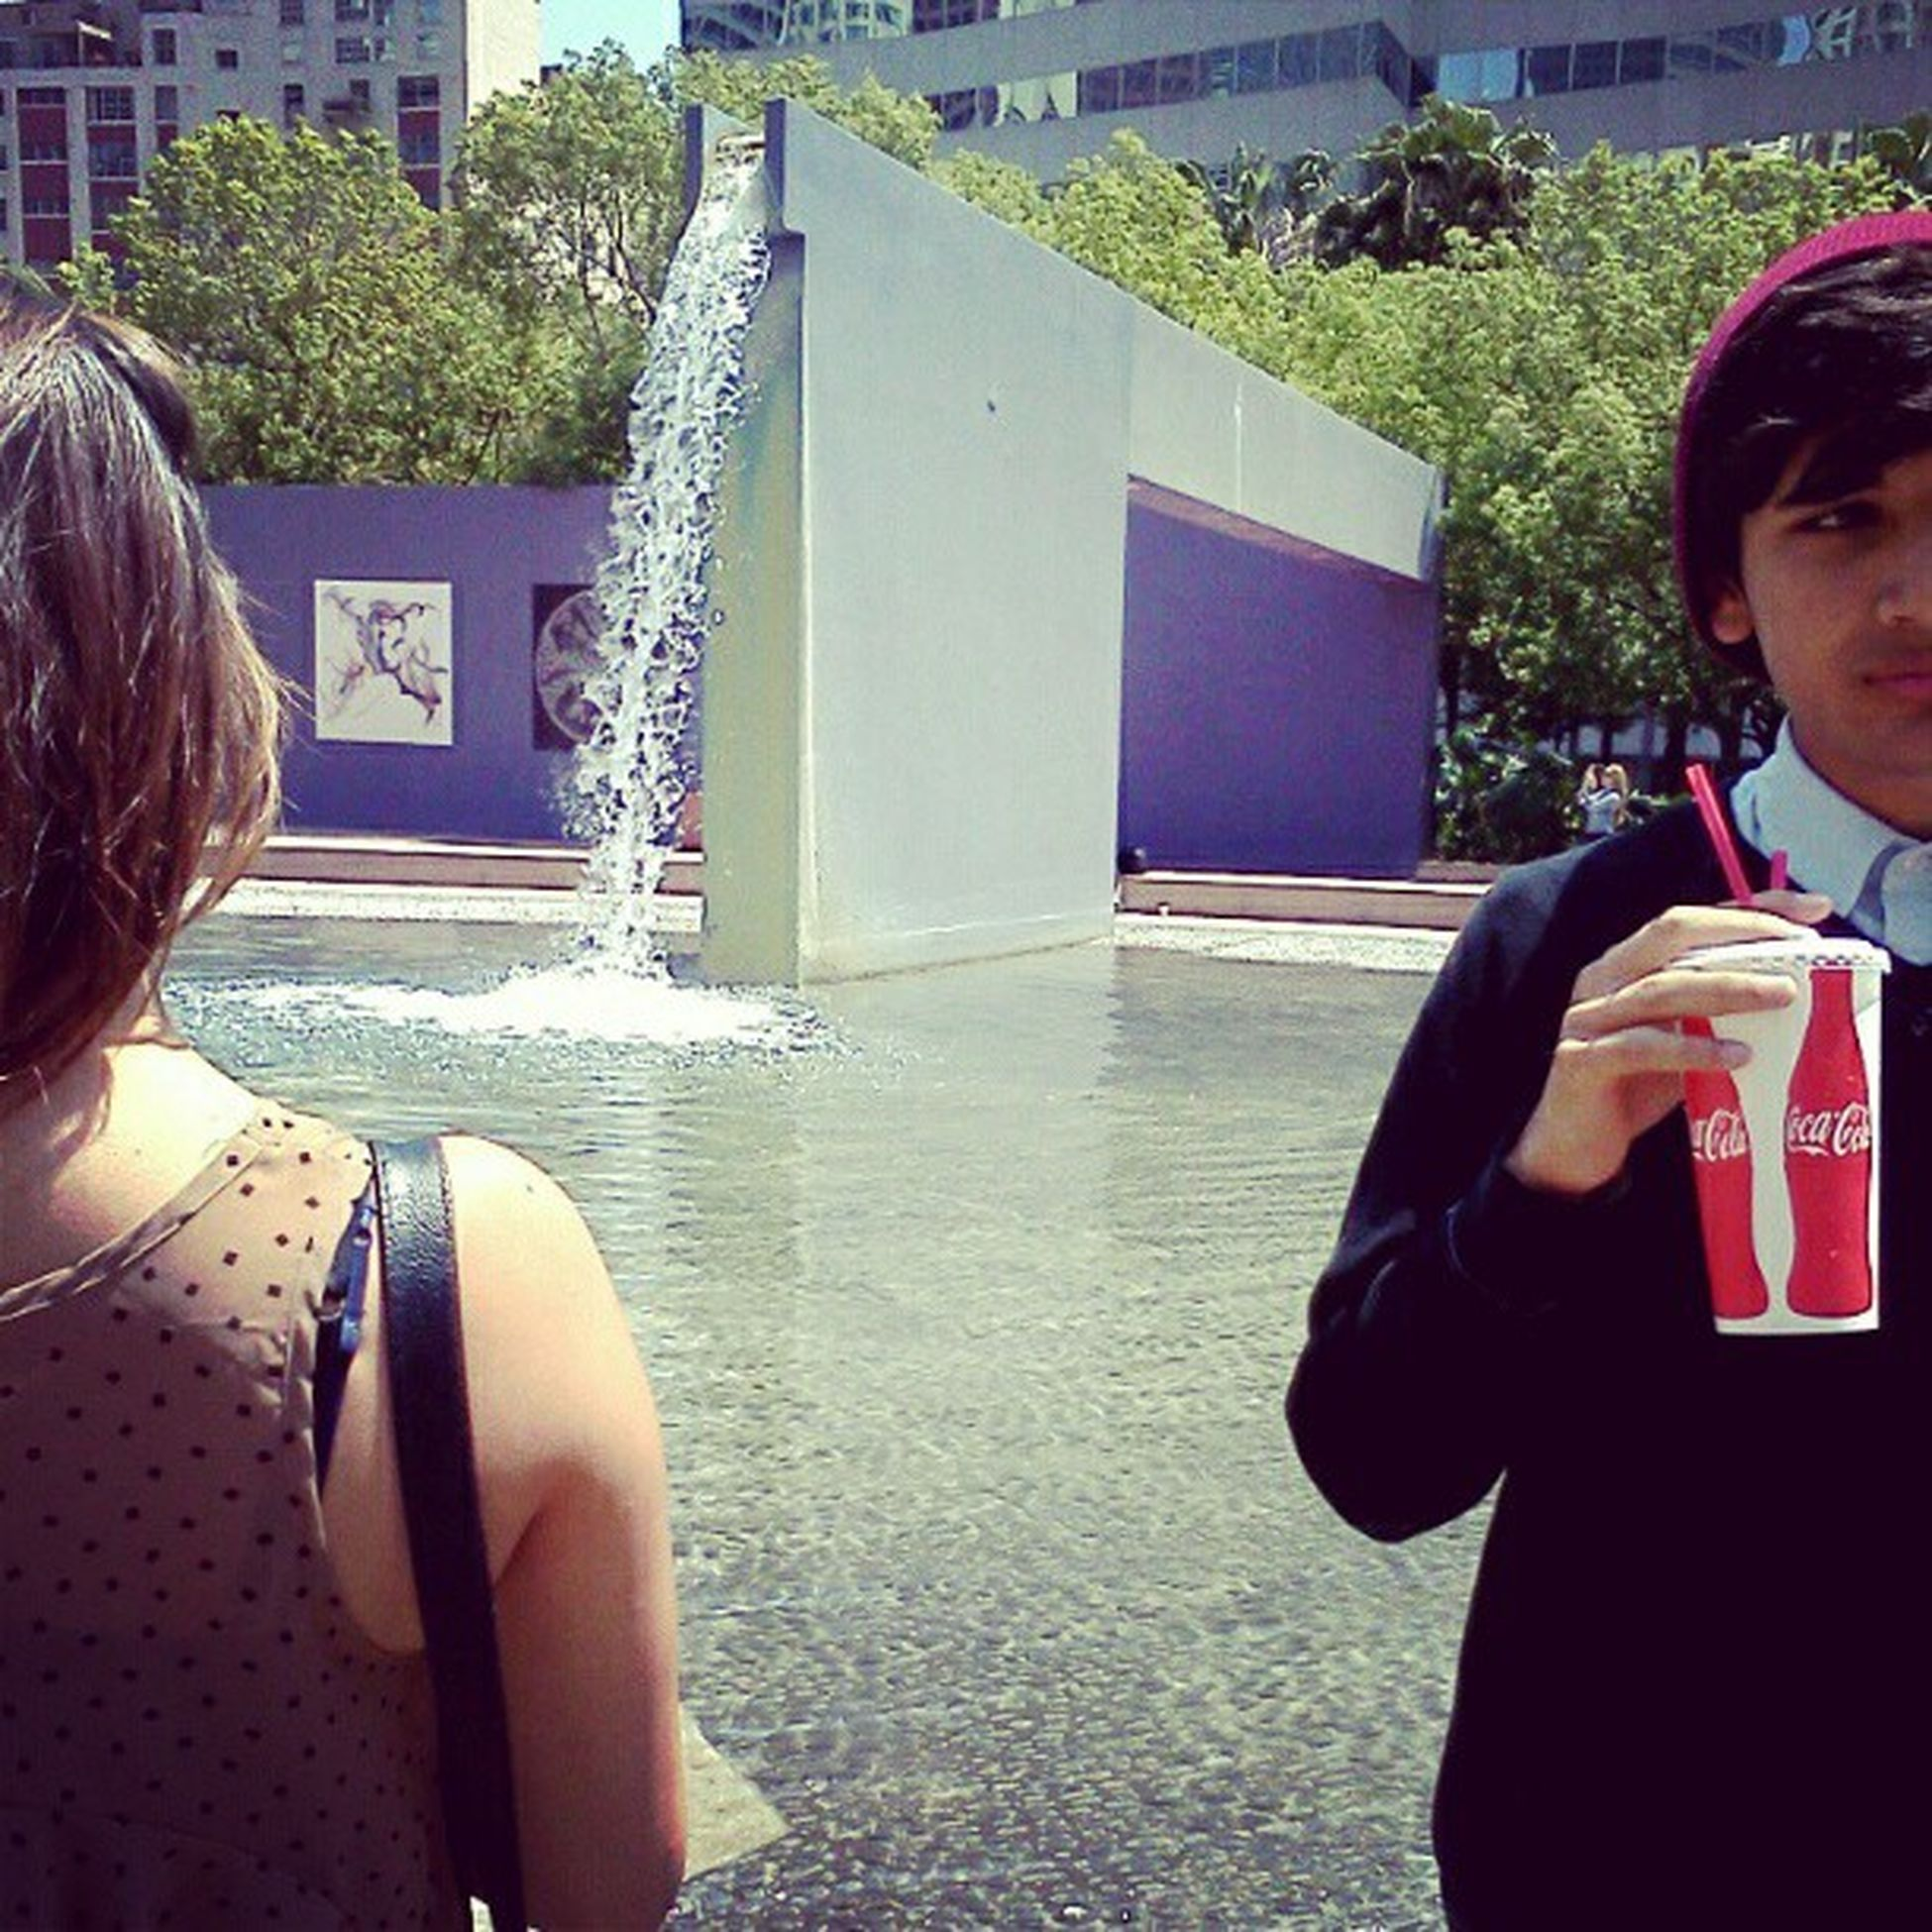 this was around 1pm Pershingsquare Downtown (: